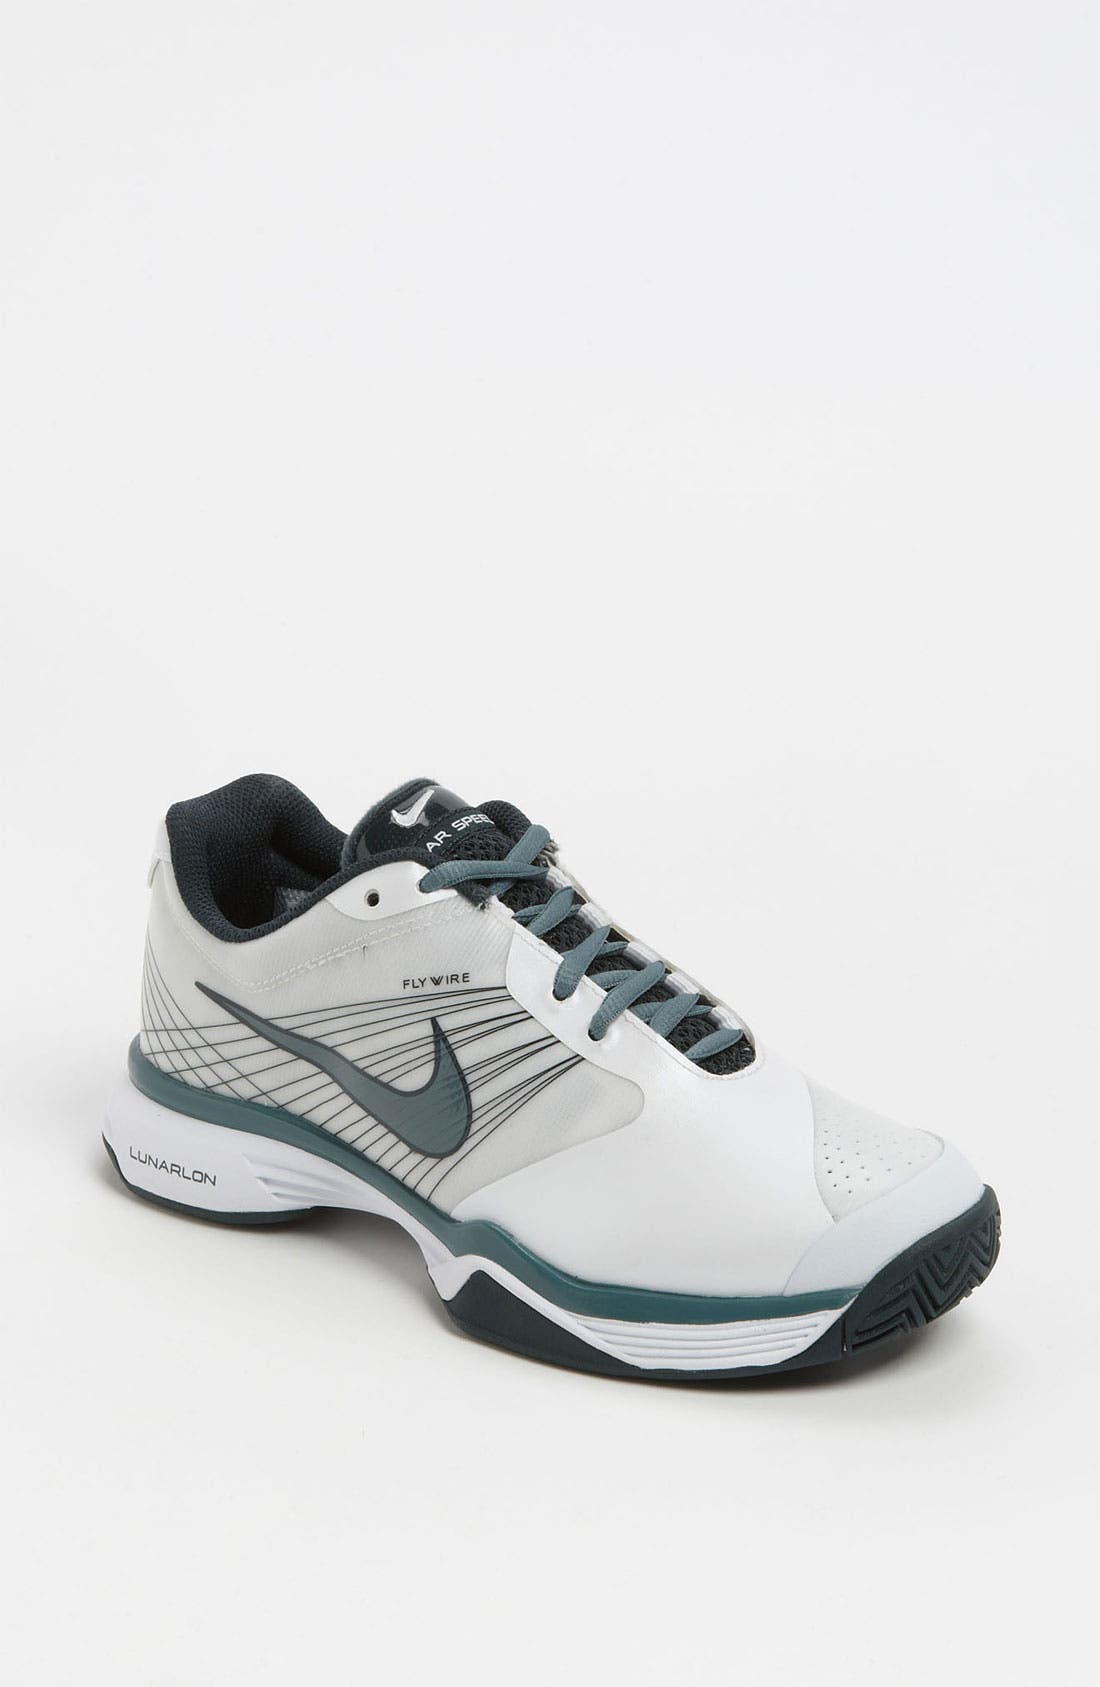 Main Image - Nike 'Lunar Speed 3' Tennis Shoe (Women)